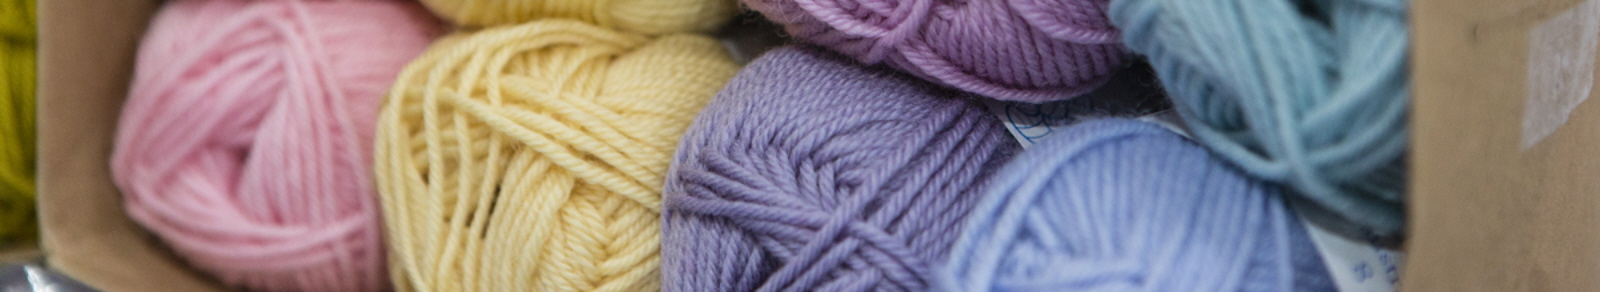 Knitting For Charity South Australia : Charity knitting information